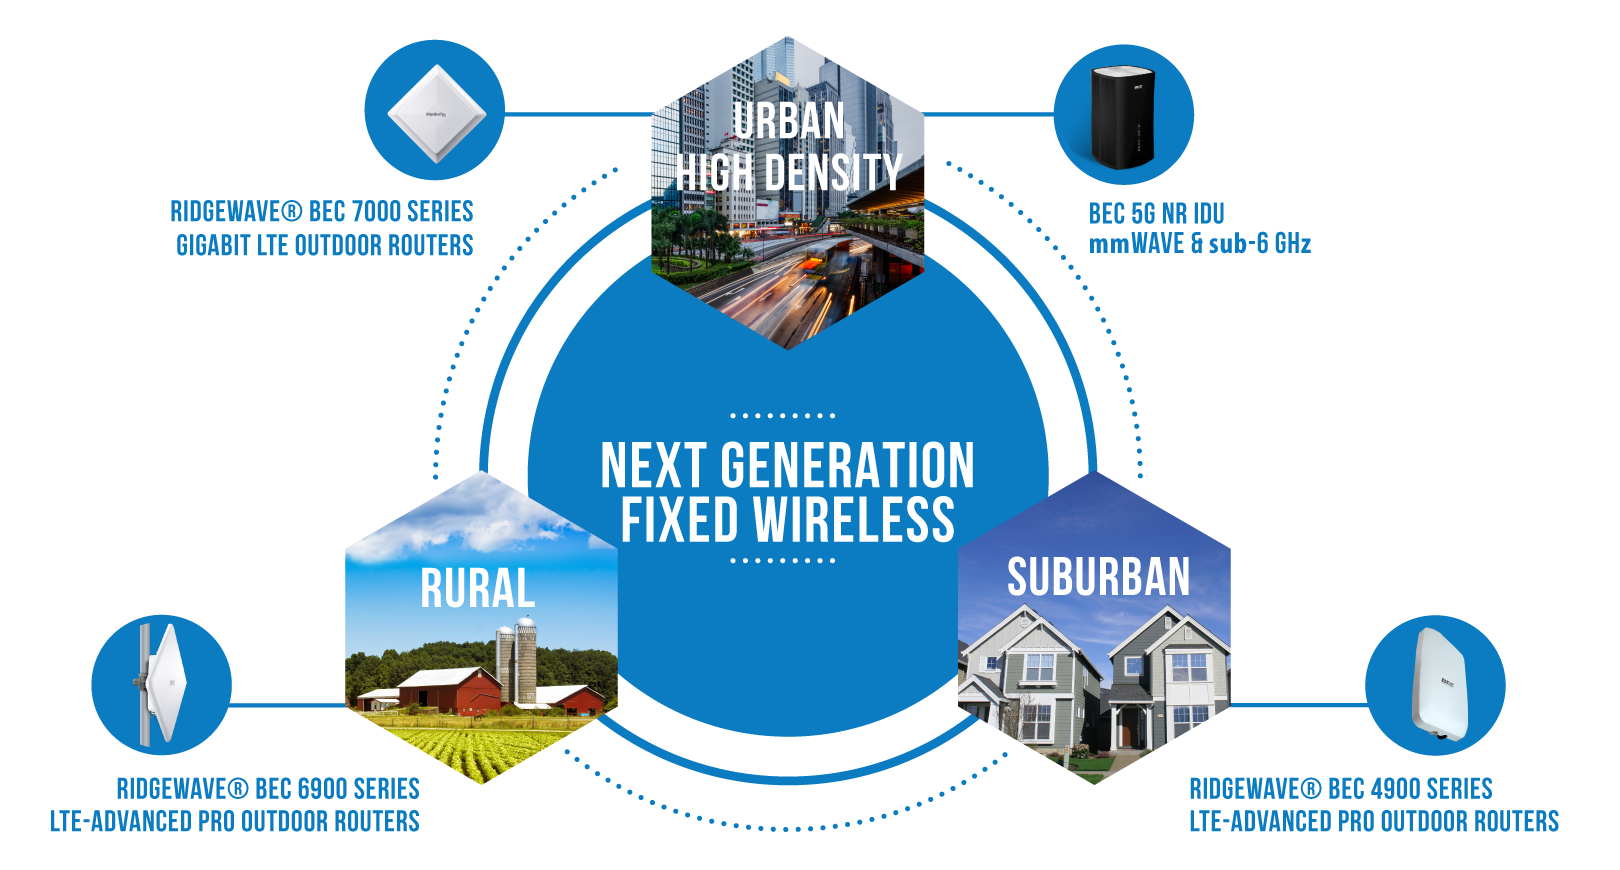 BEC's Next generation multi-gigabit fixed wireless access